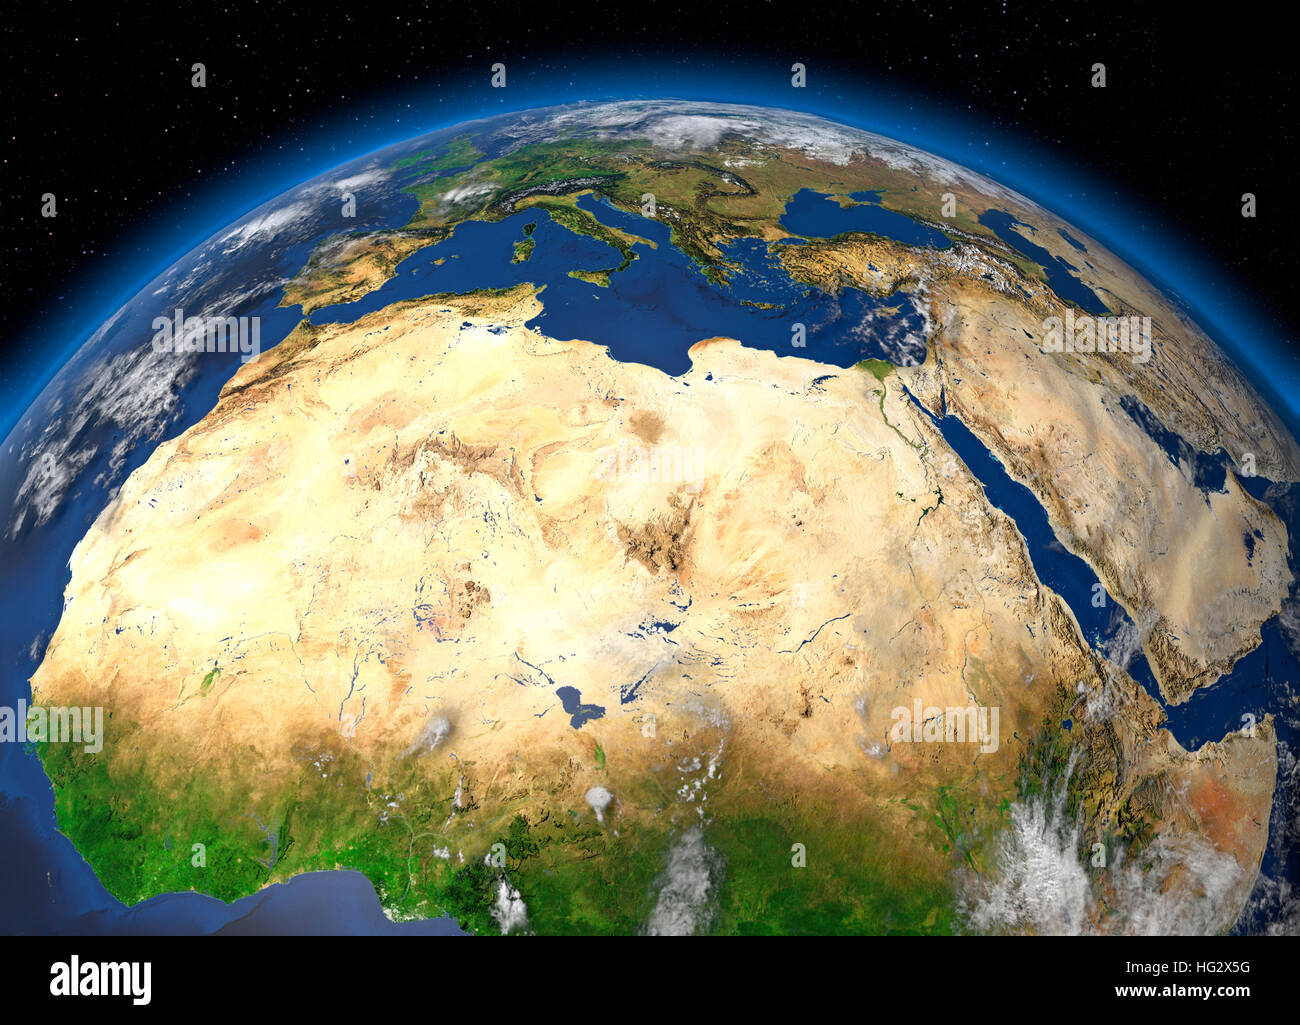 Earth viewed from space showing the sahara desert and north africa earth viewed from space showing the sahara desert and north africa realistic digital illustration including relief map hill shading of terrain pleas gumiabroncs Gallery